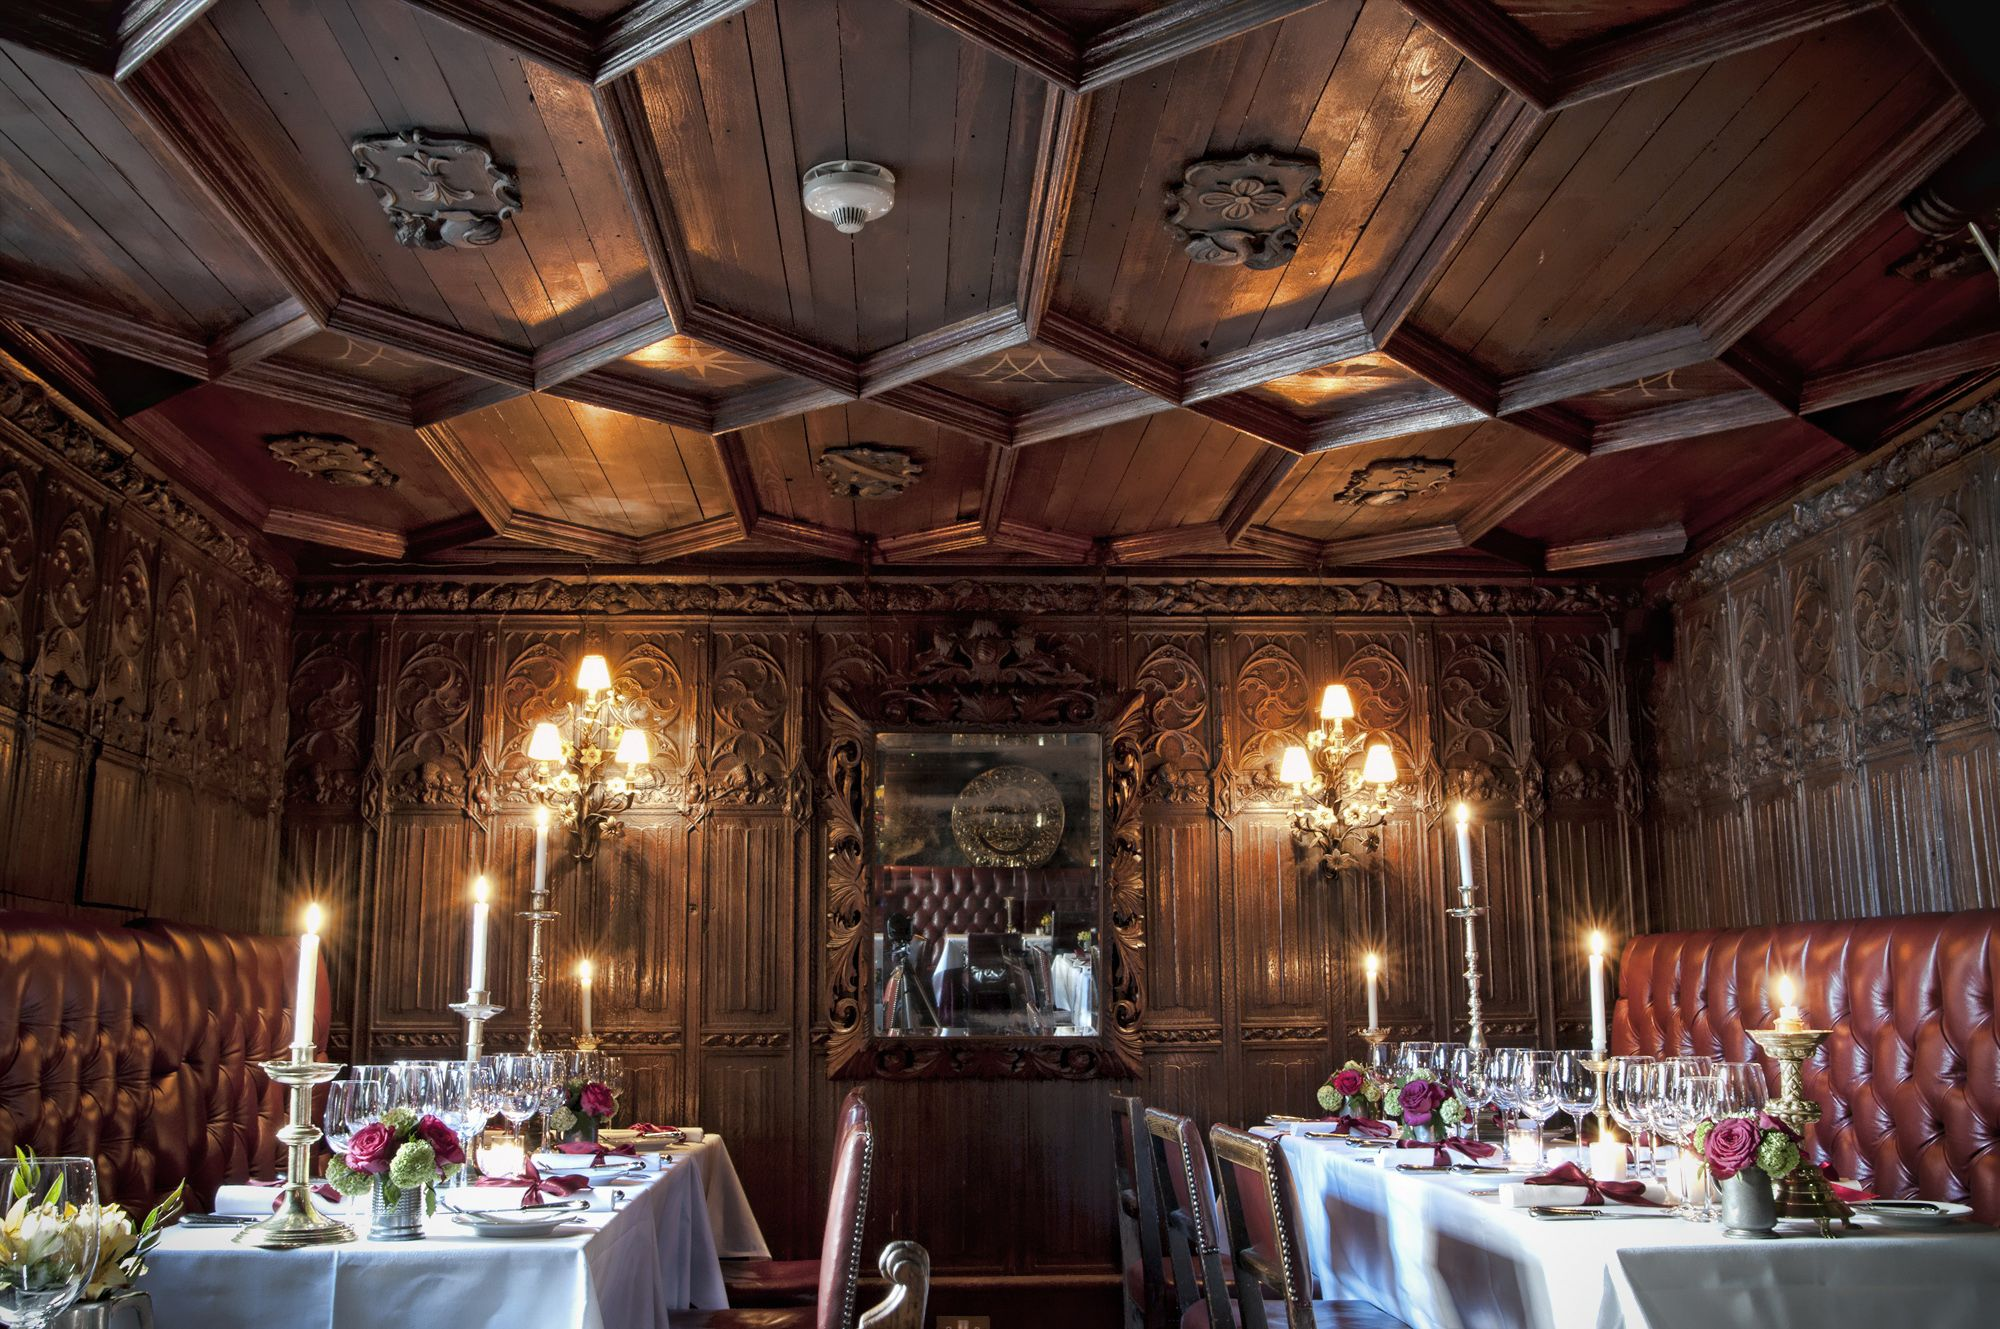 14 Must Visit Culinary Destinations For 2019 Hong Kong Tatler Restaurant Reservation Ceiling Rose Wiring Set In A 16th Century Merchants House The Witchery Is Slice Of History